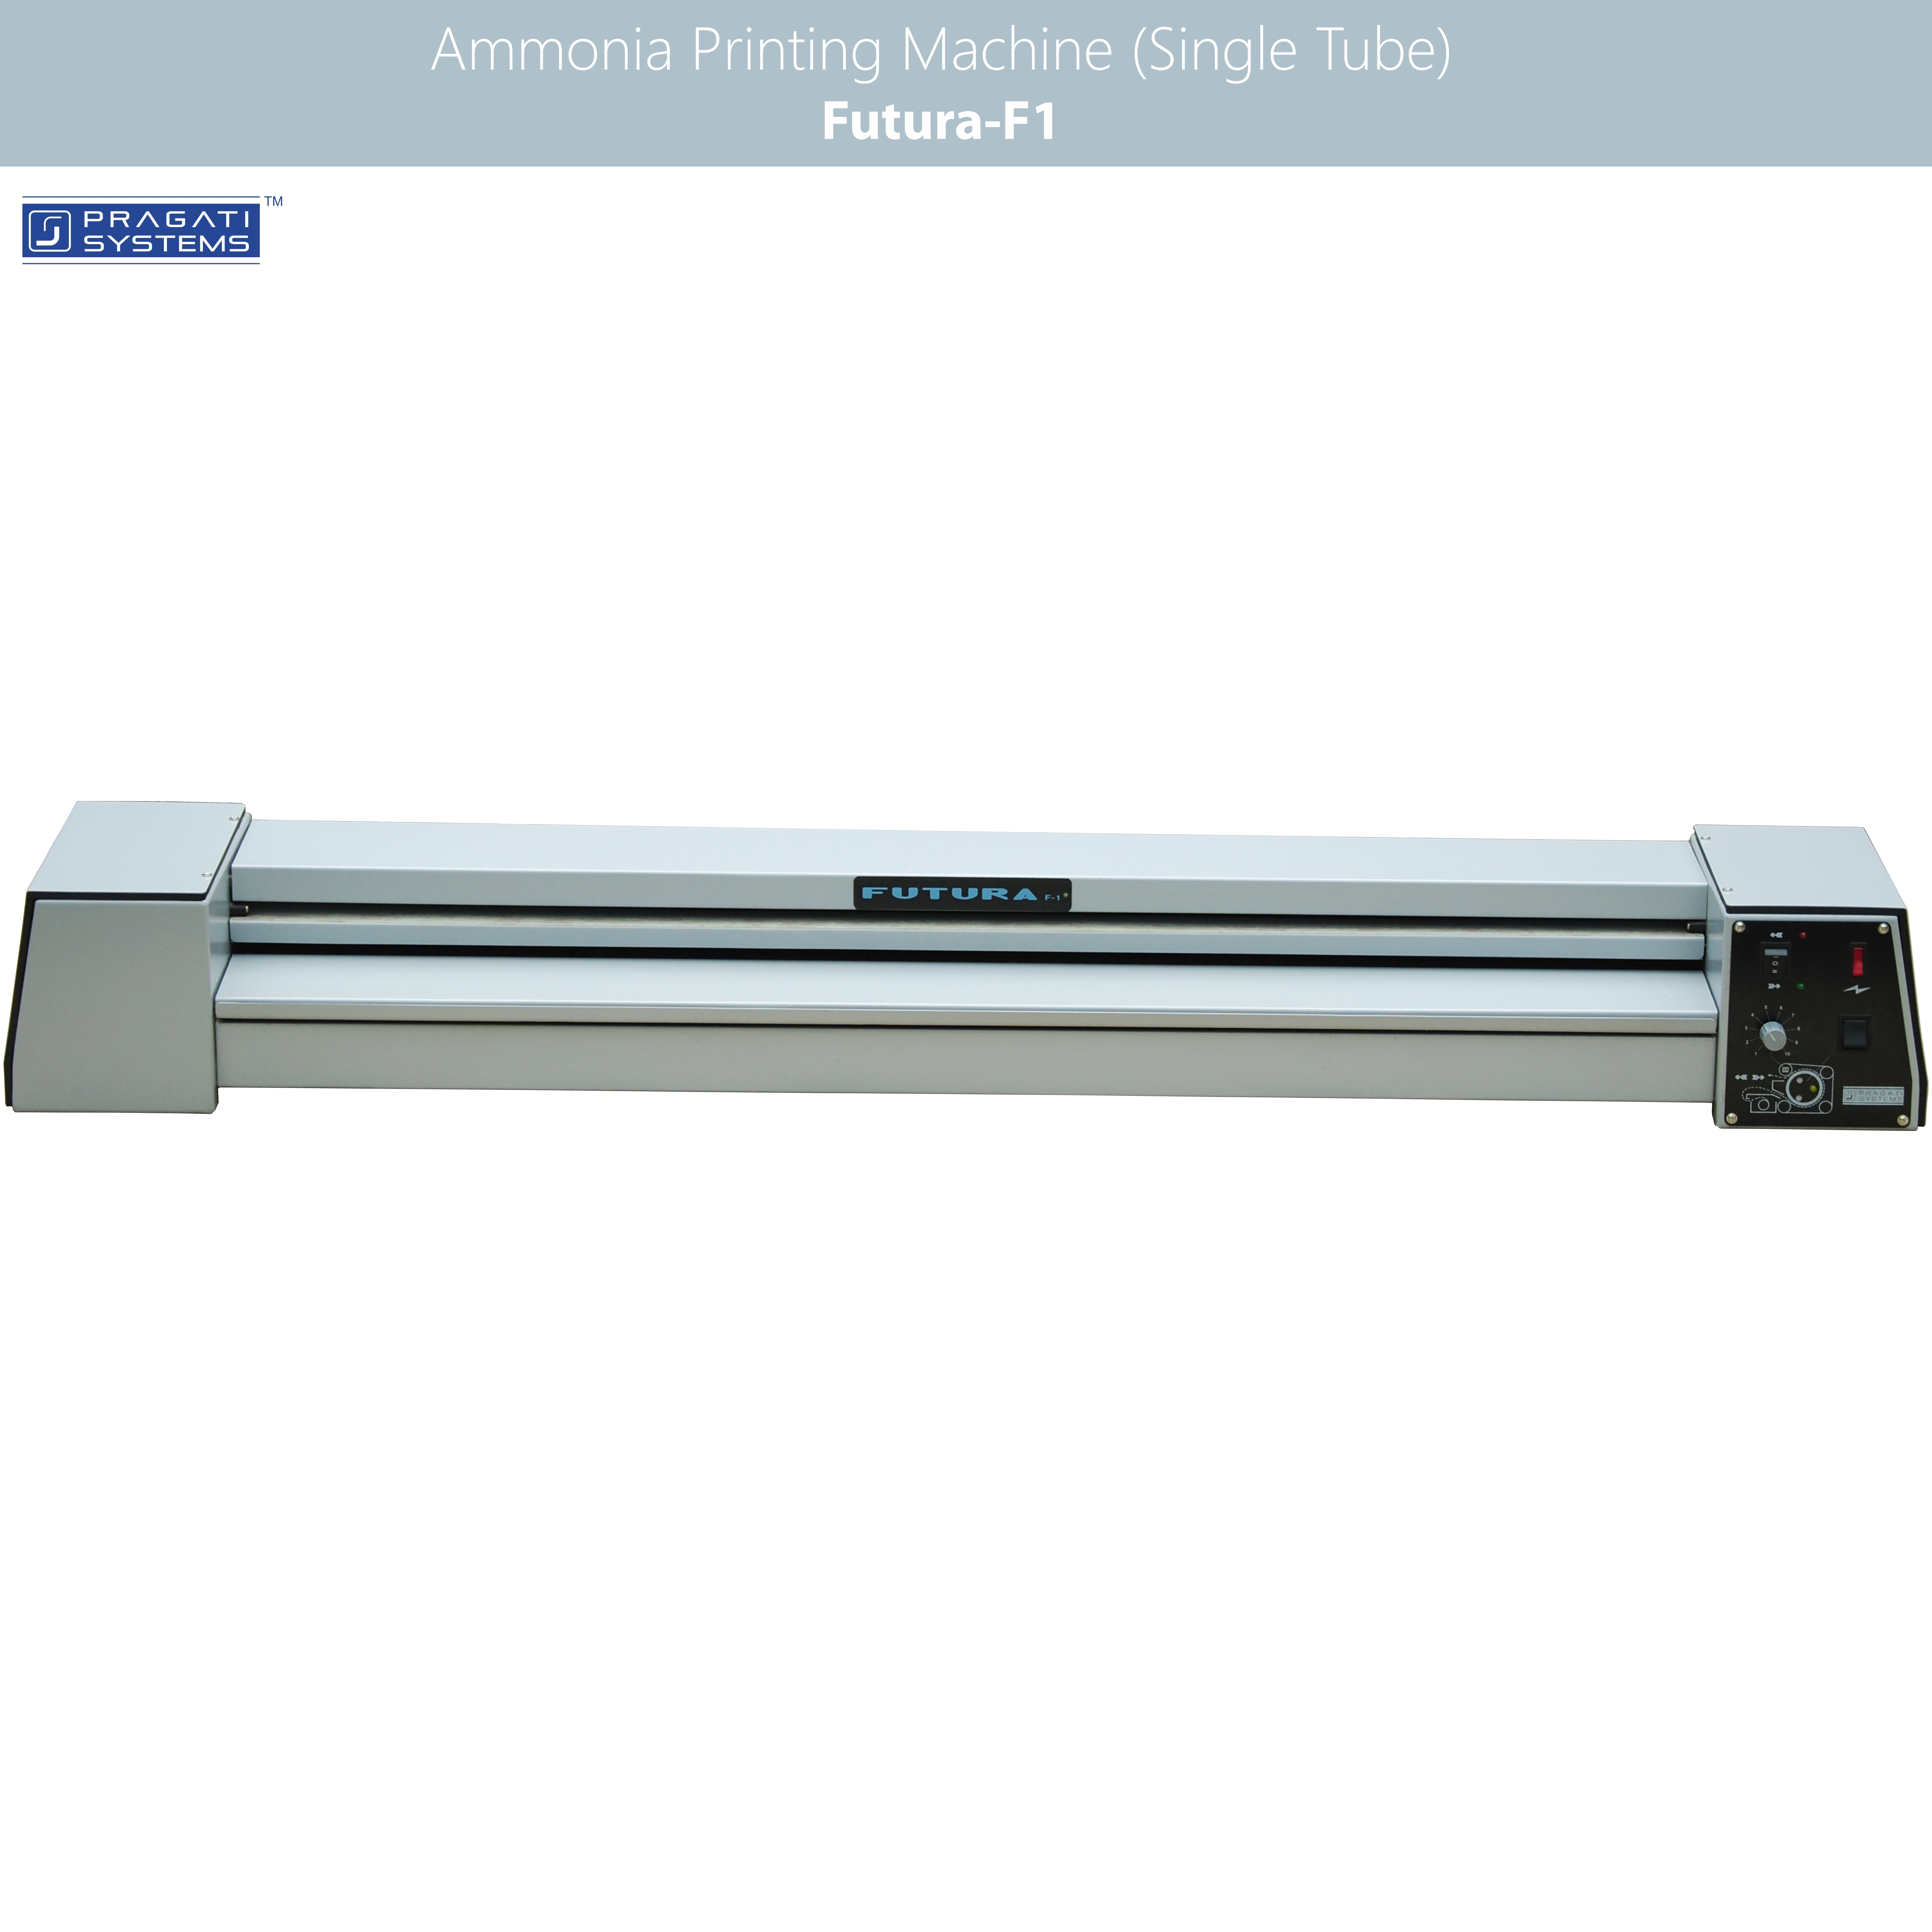 Ammonia Printing & Drafting Machine - Triple Tube